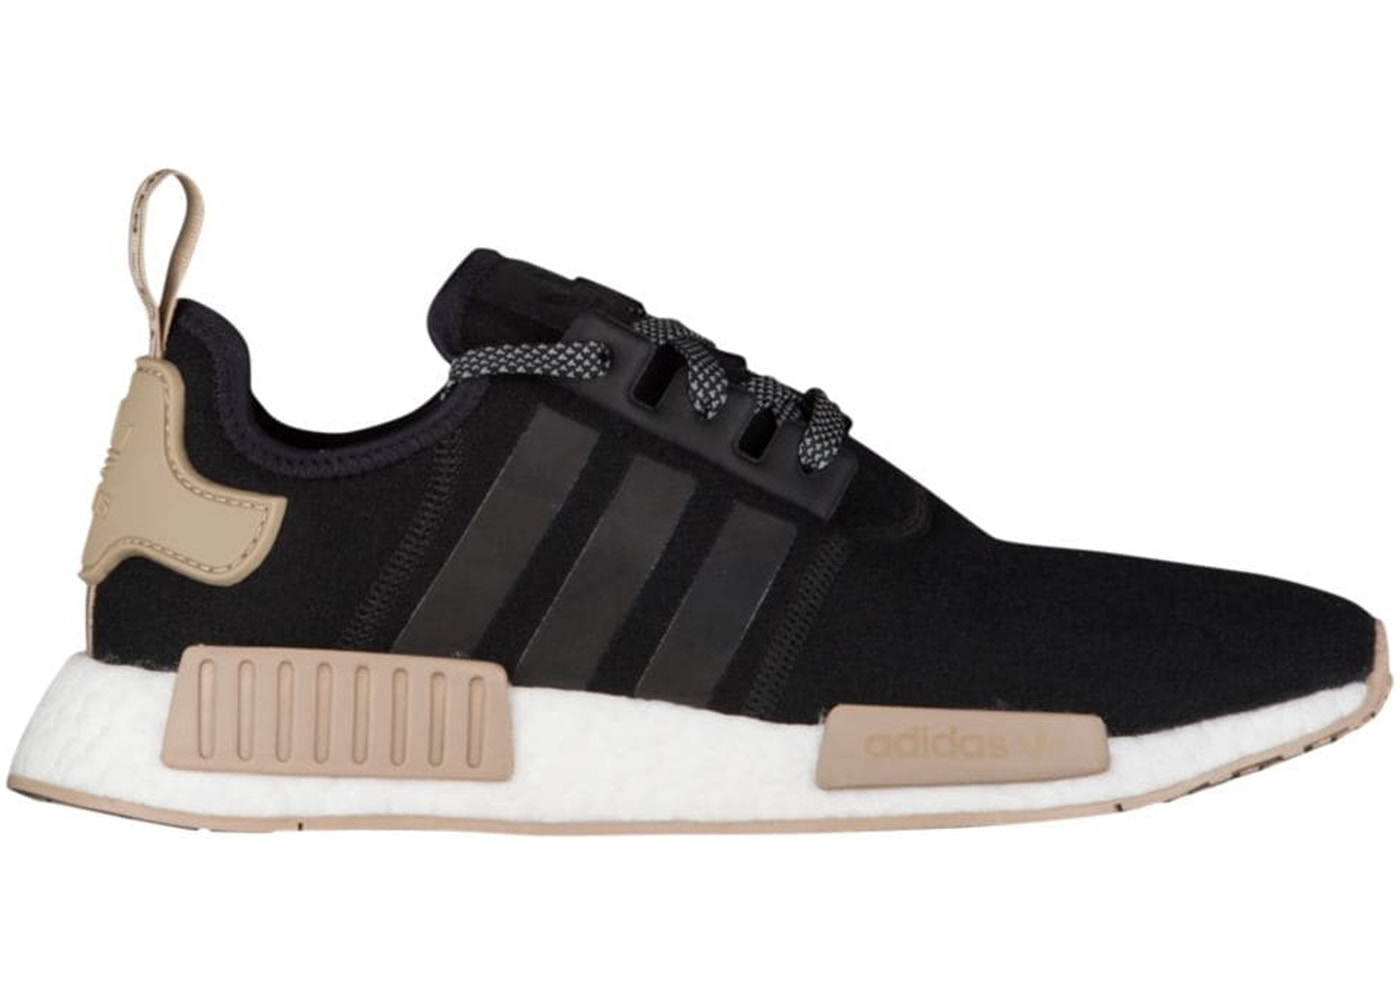 7a89d1a38904c Sell. or Ask. Size  9.5. View All Bids. adidas NMD R1 Black White Trace  Khaki